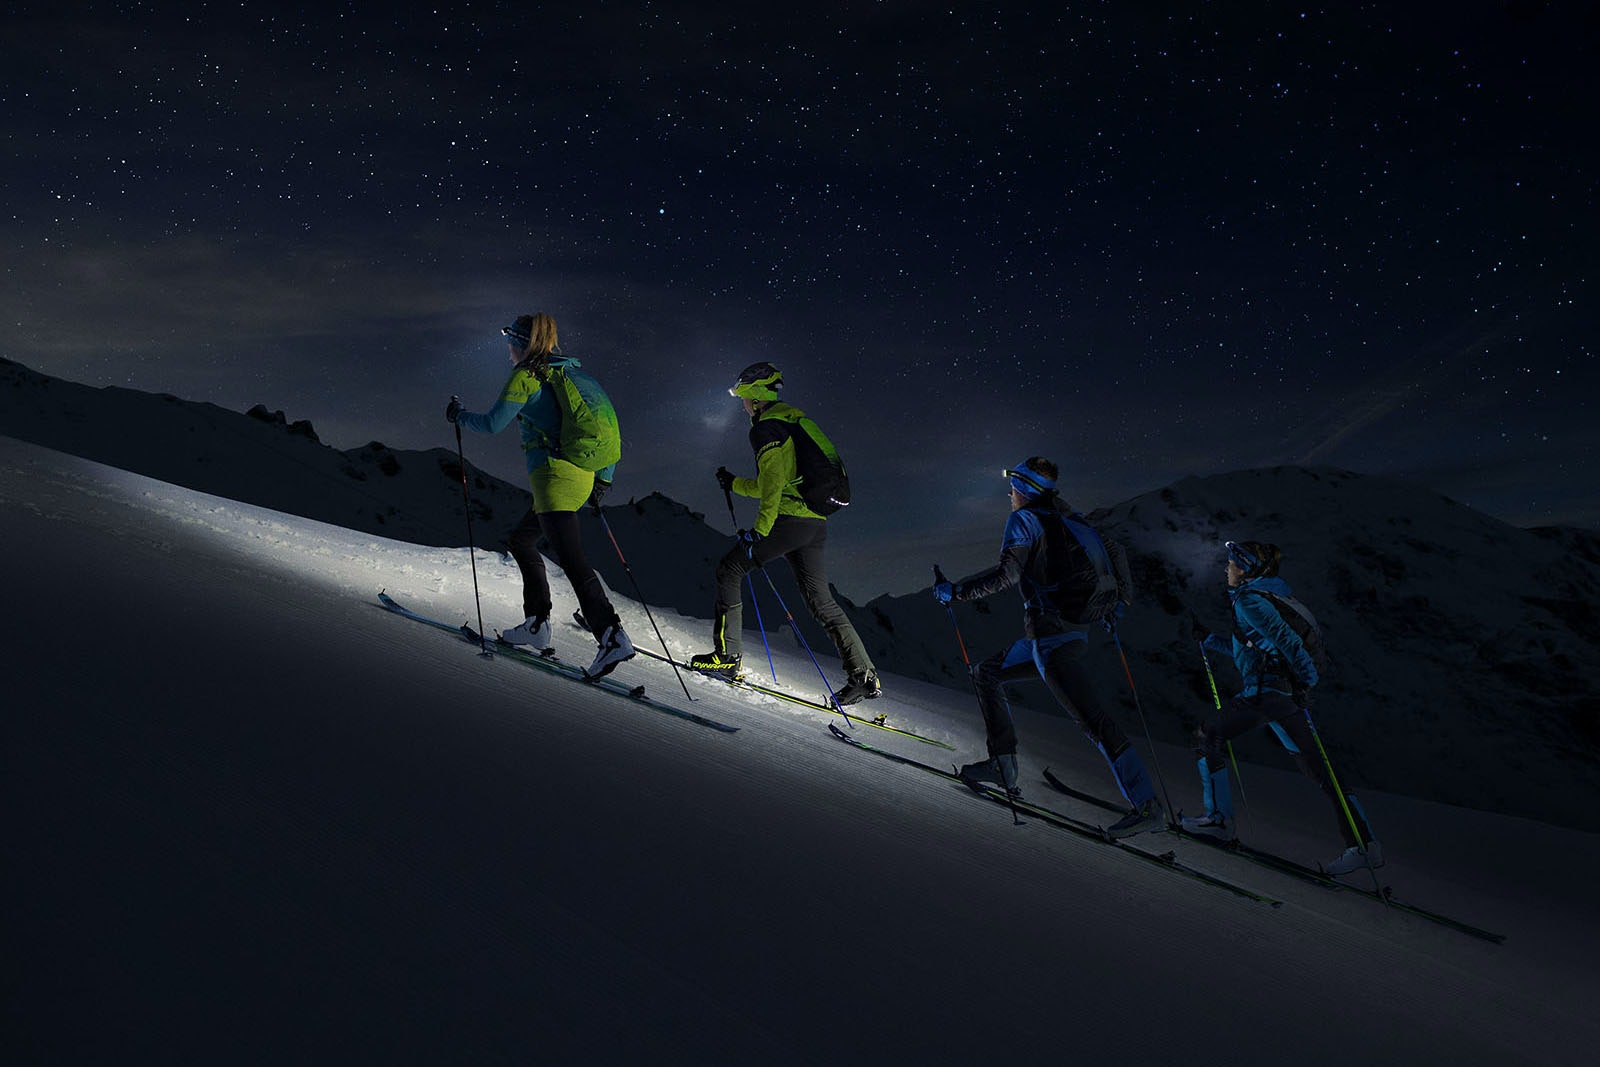 Aspen Snowmass offers a full-moon uphill ski dinner for those with enough fortitude to conquer the mountain at night.